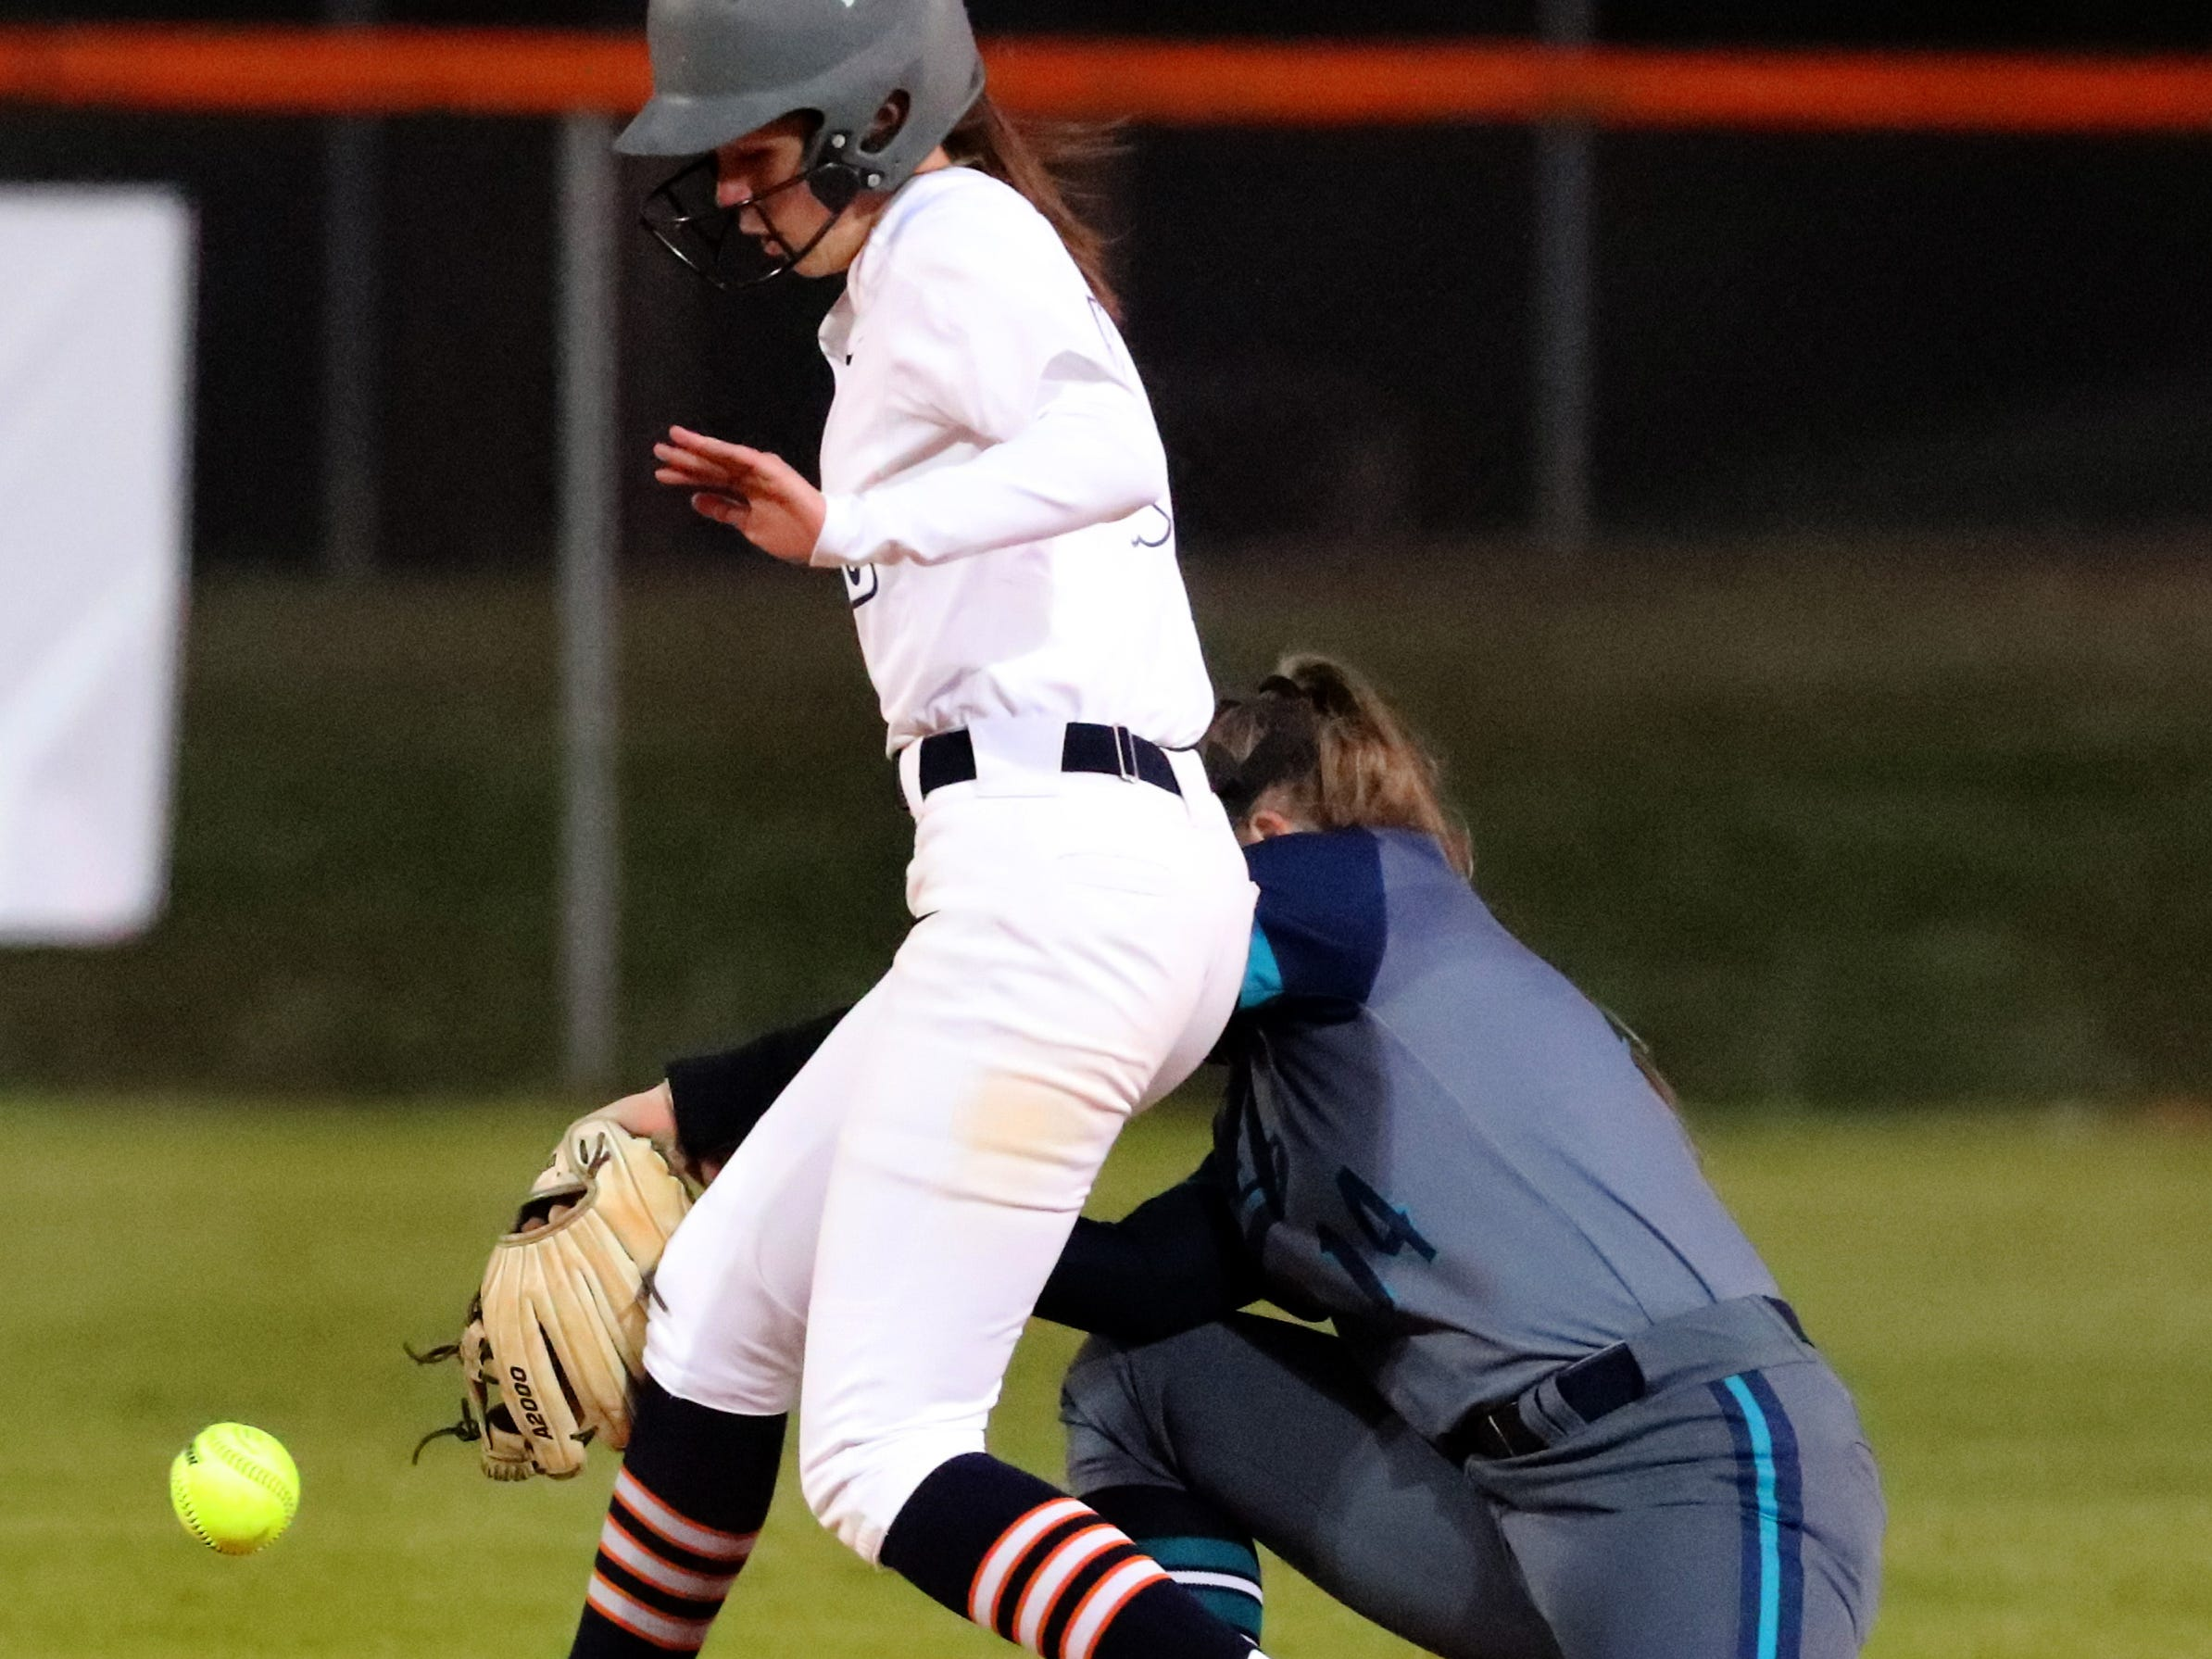 Blackman's Jada Chase (7) runs to second base as Siegel's Claire Czajkowski (14) tries to get her out, on Monday, March 18, 2019, at Blackman.